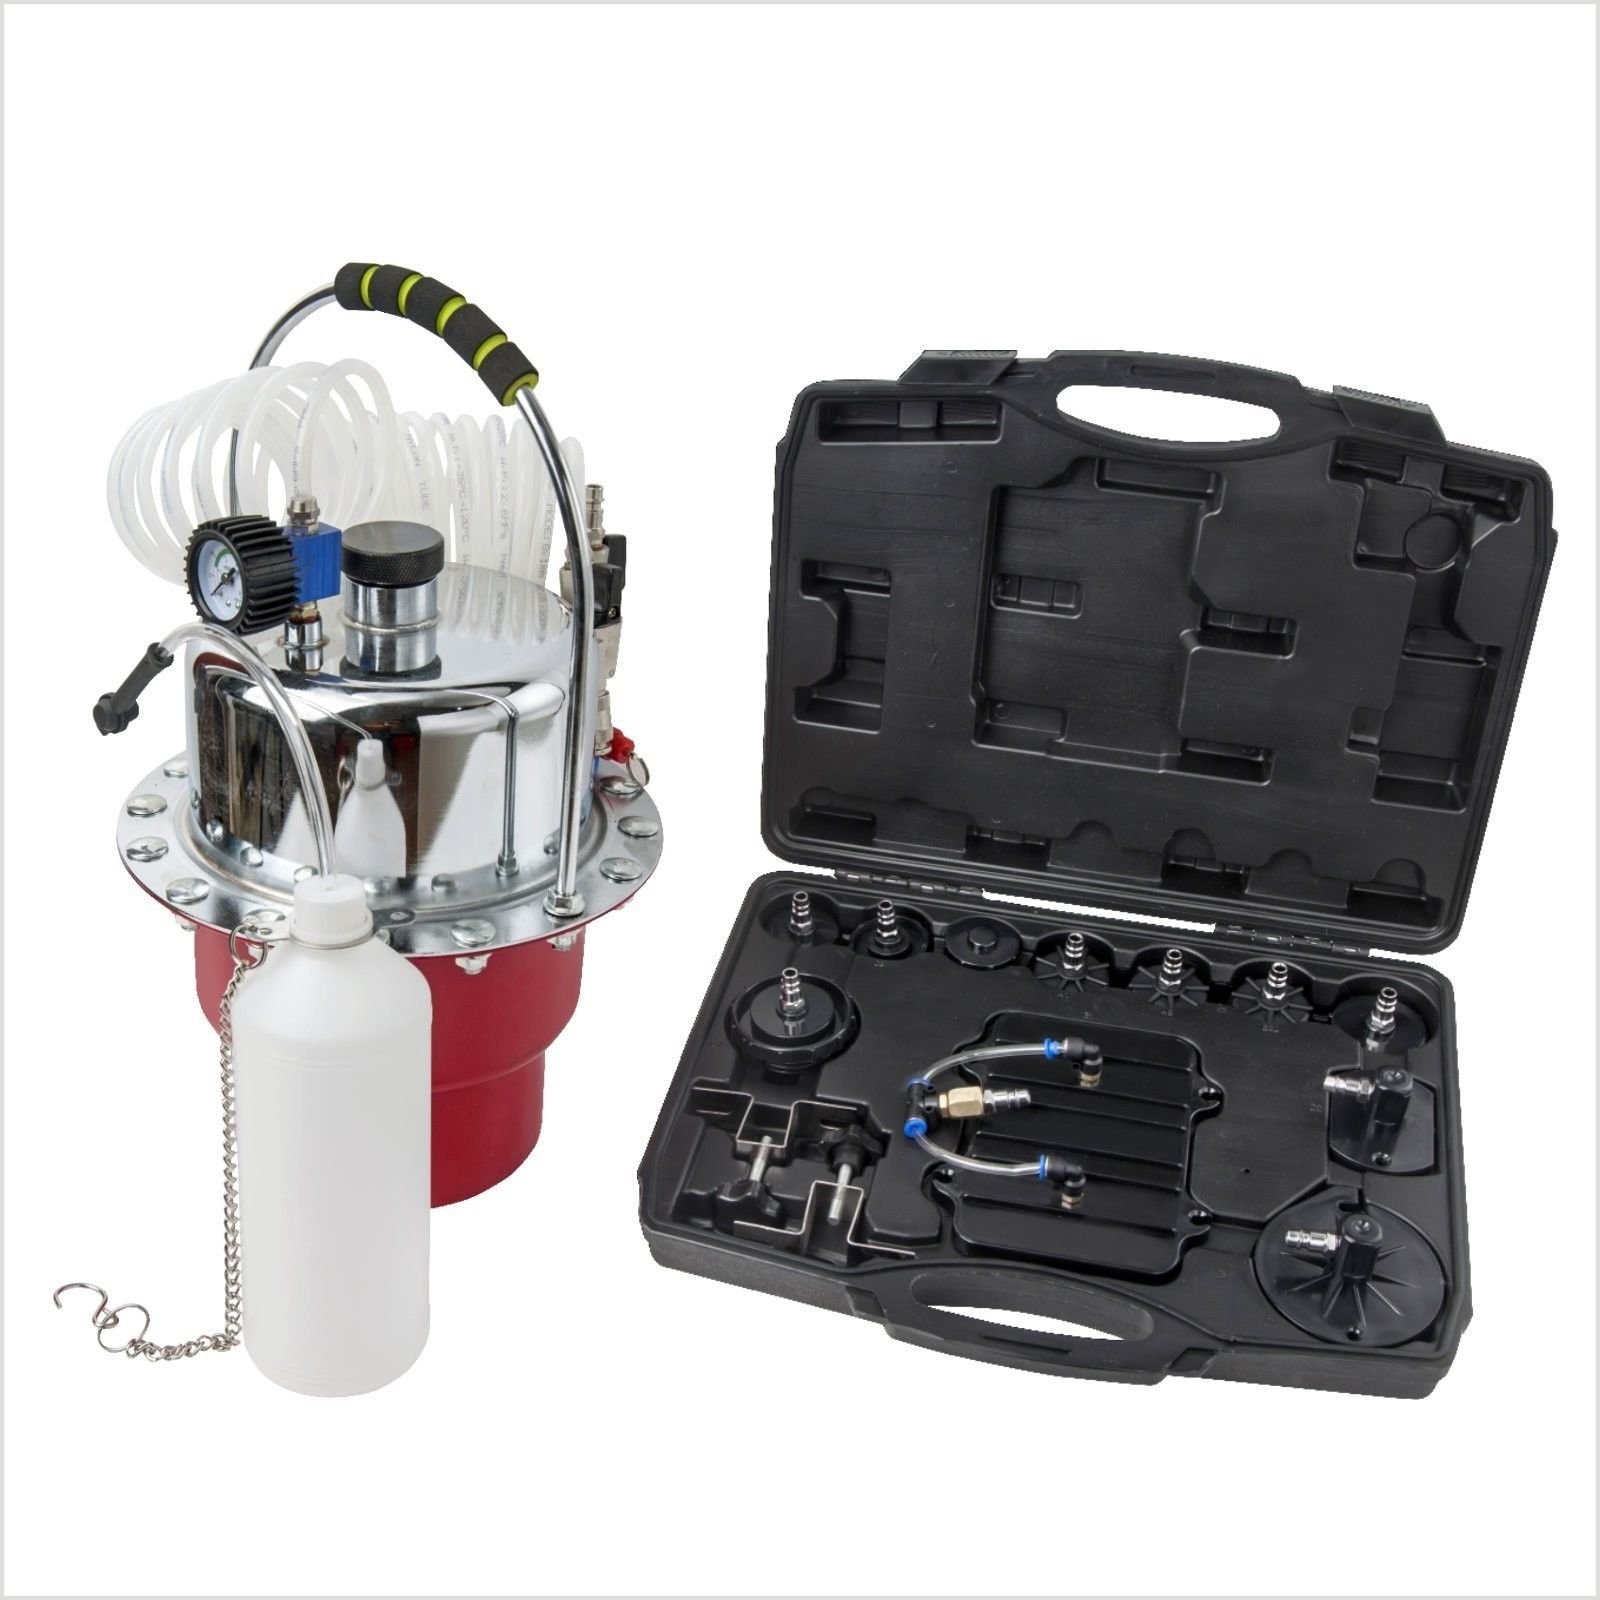 M2 Outlet Portable Pneumatic Air Pressure Brake and Clutch Bleeder Valve System Kit by M2 OUTLET (Image #1)